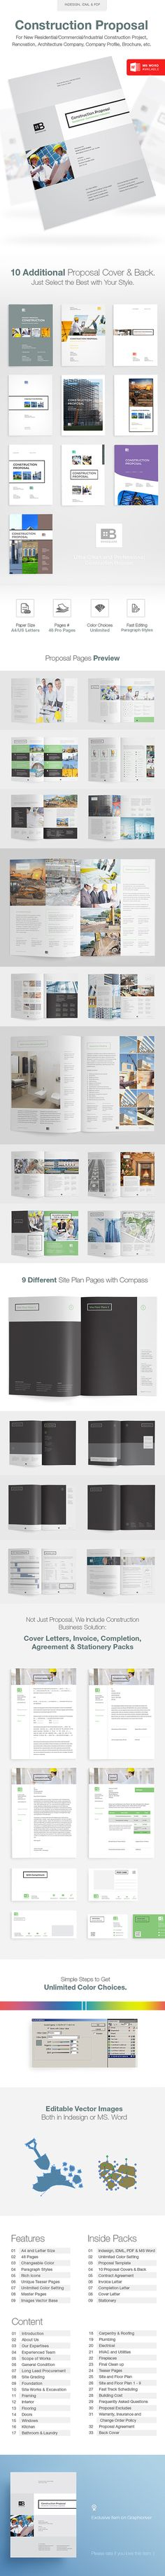 Construction Proposal is a comprehensive documents for new Residential/Commercial/Industrial Construction Project, Renovation, Arc Brochure Layout, Brochure Design, Invoice Design, Book Design Layout, Print Layout, Company Profile Design, Catalogue Layout, Digital Marketing Business, Architecture Company